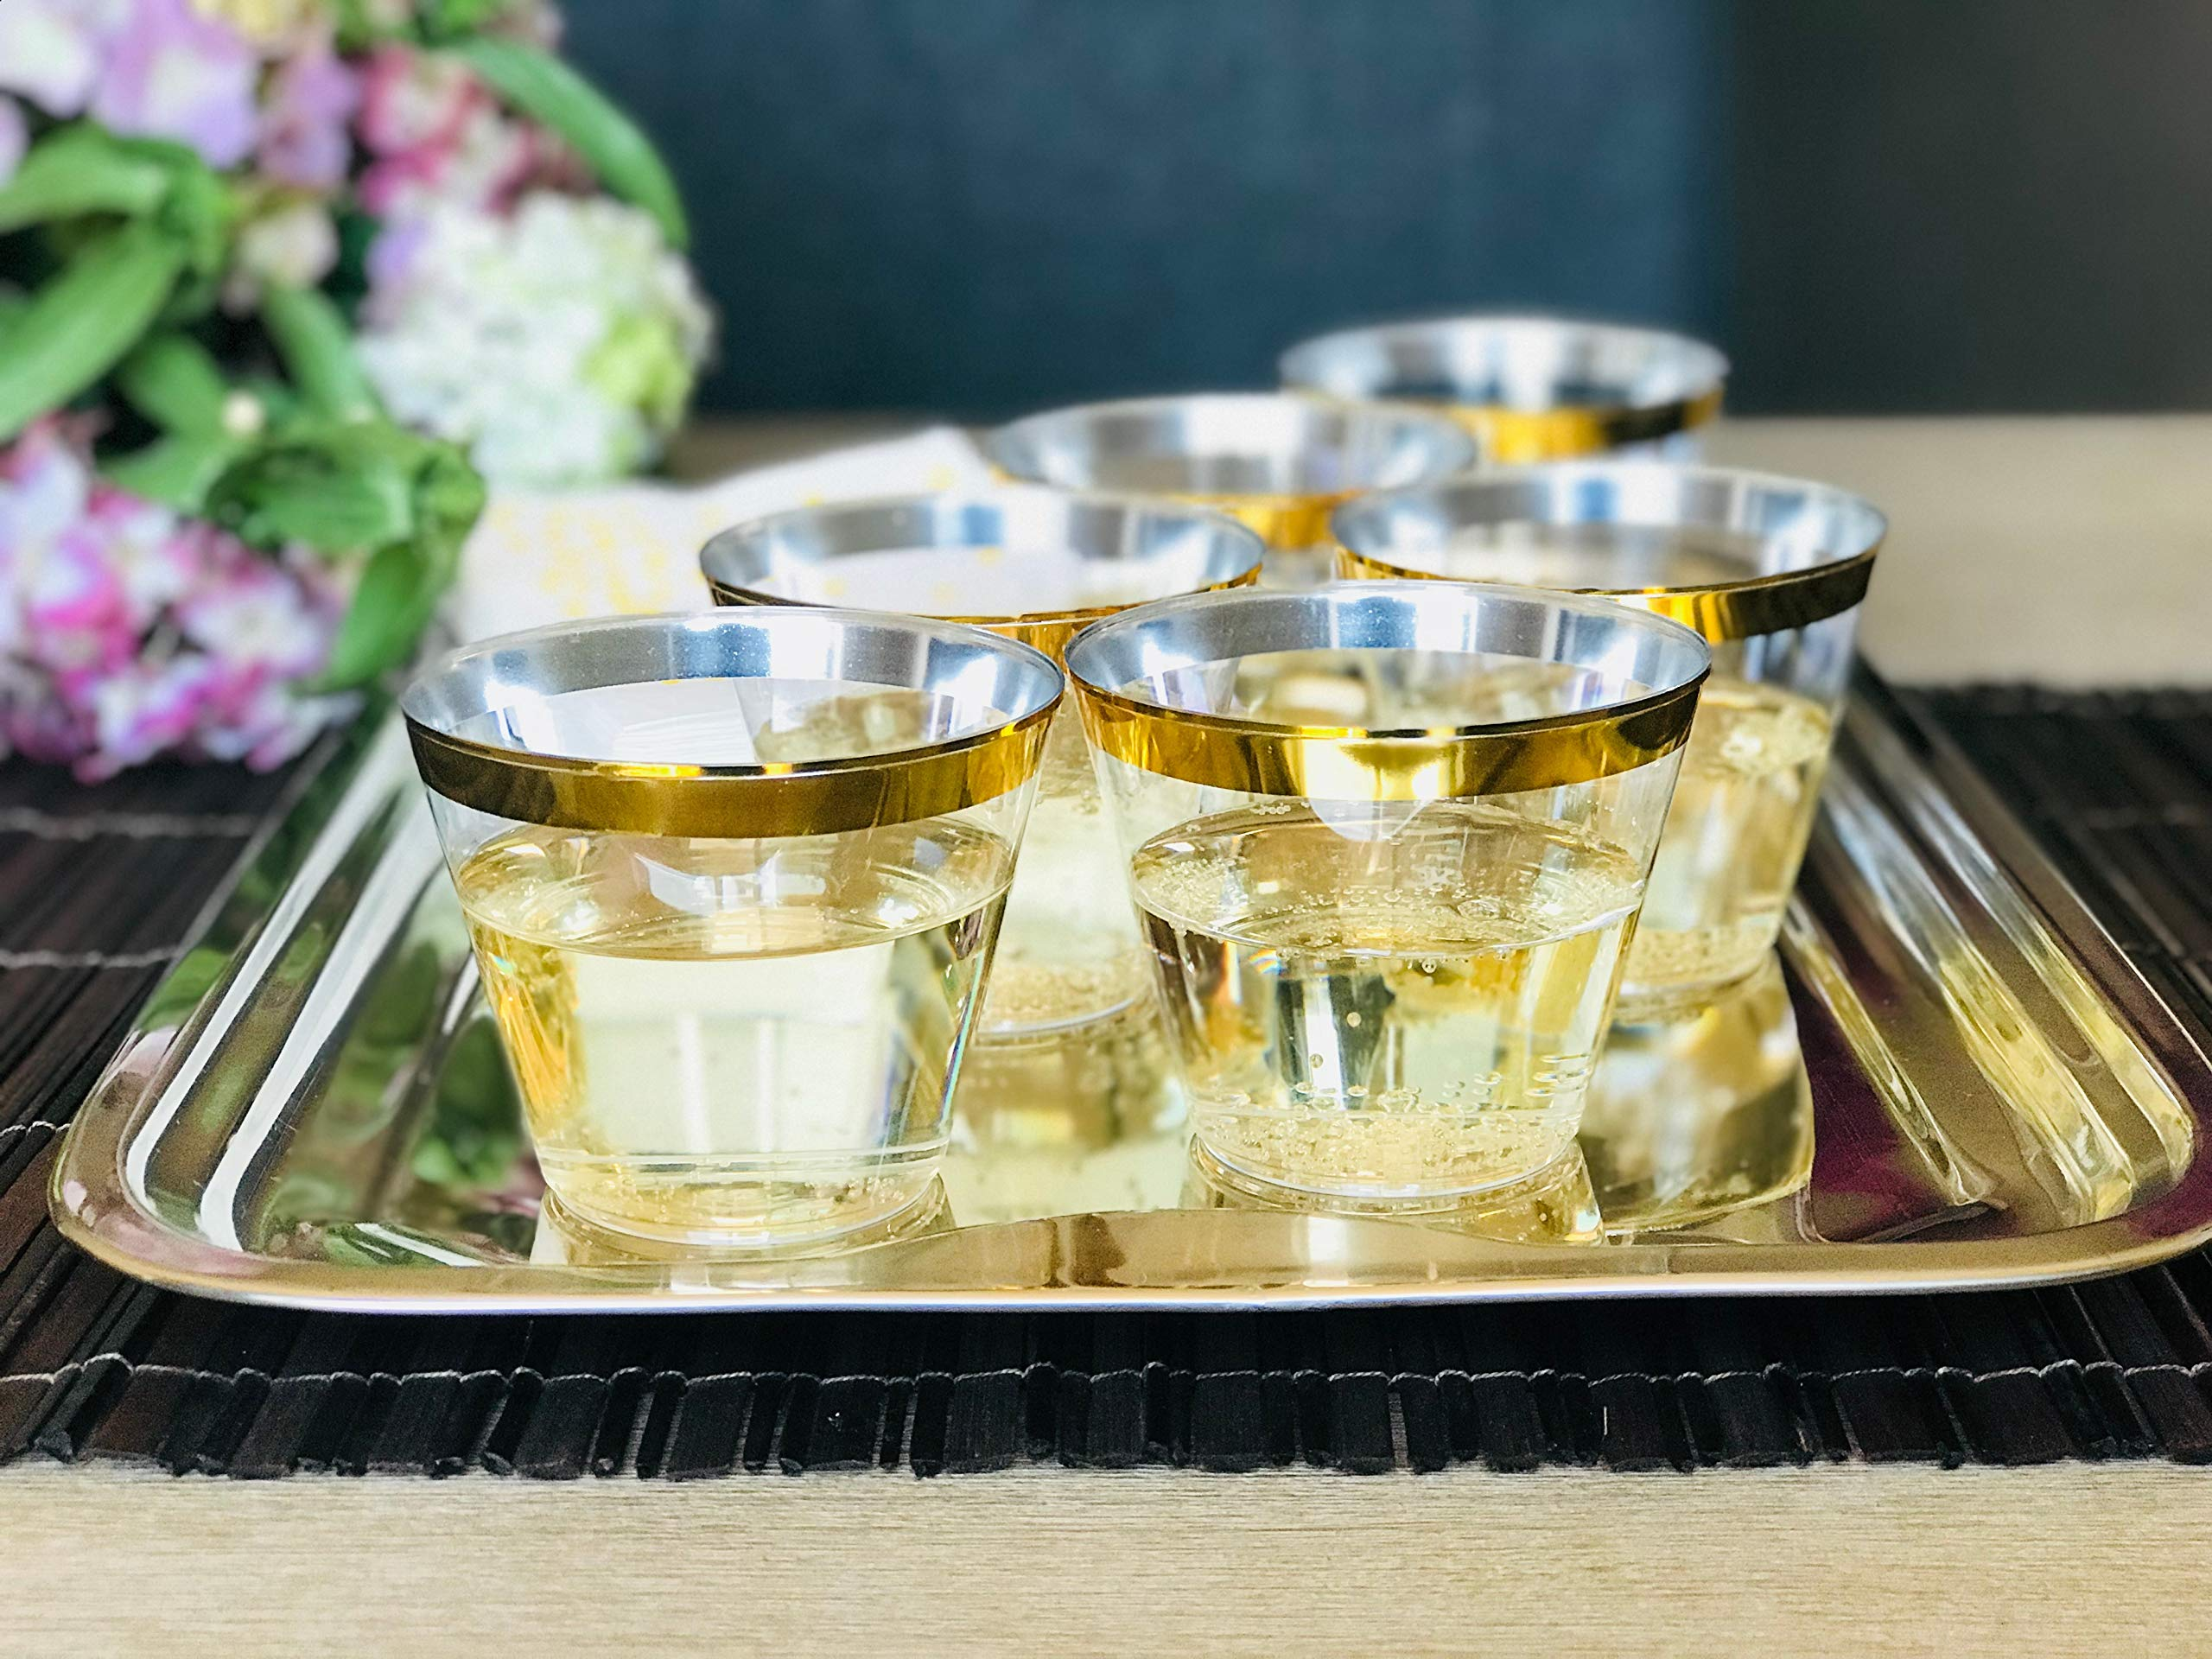 Premium 100 Gold Rimmed 9 oz Clear Plastic Cups + Free 100 Napkins ~ Perfect for Wedding/Engagement/ Cocktails/Dinner/Wine/Birthday Parties ~ Great Value Party Pack 100 Gold Rim Cups + 100 Napkins by Premium Party Supplies (Image #6)